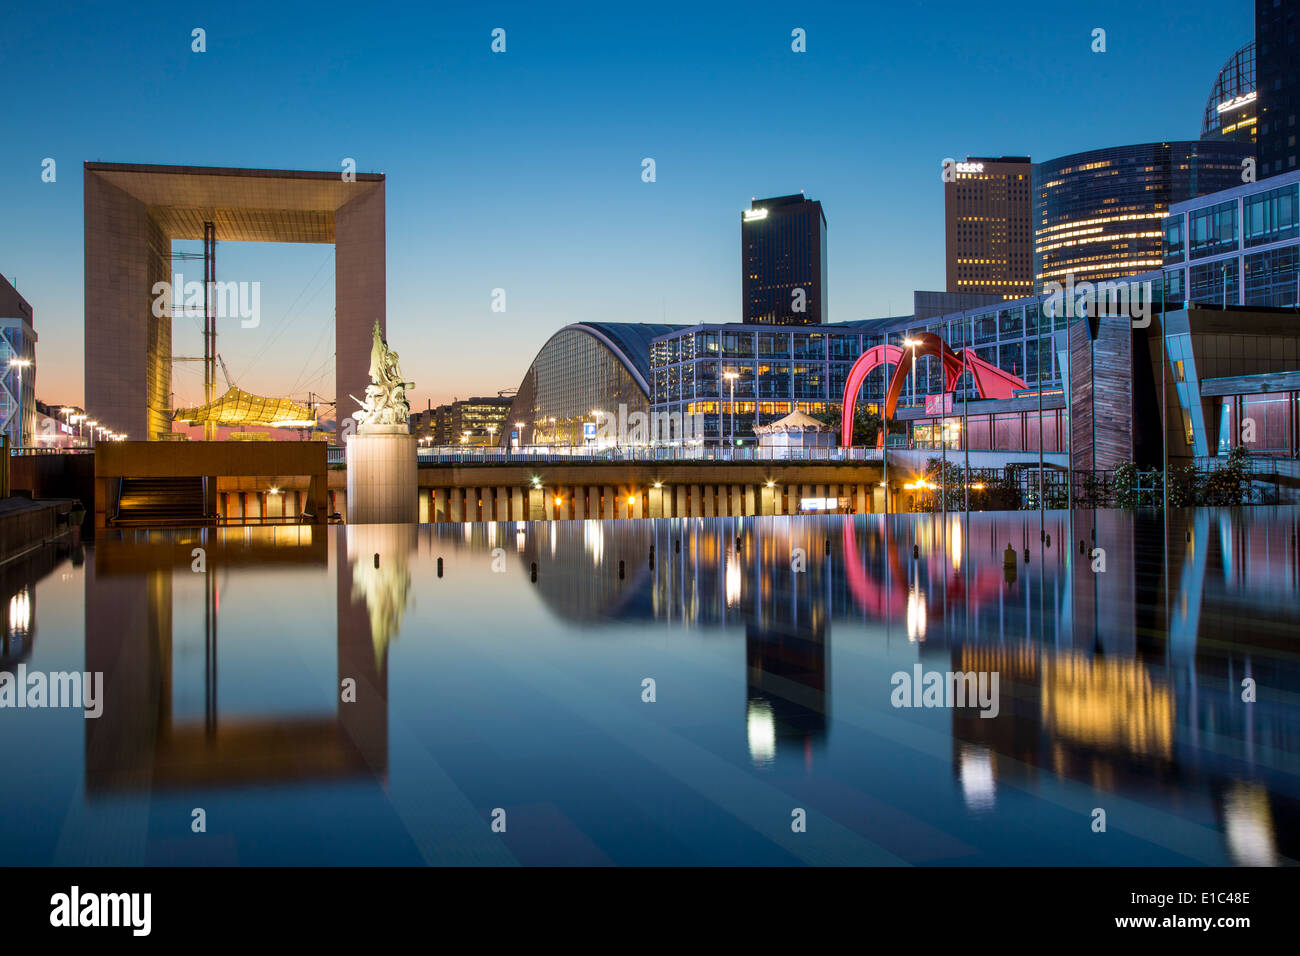 The Grand Arch and modern buildings of La Defense, Paris France Stock Photo